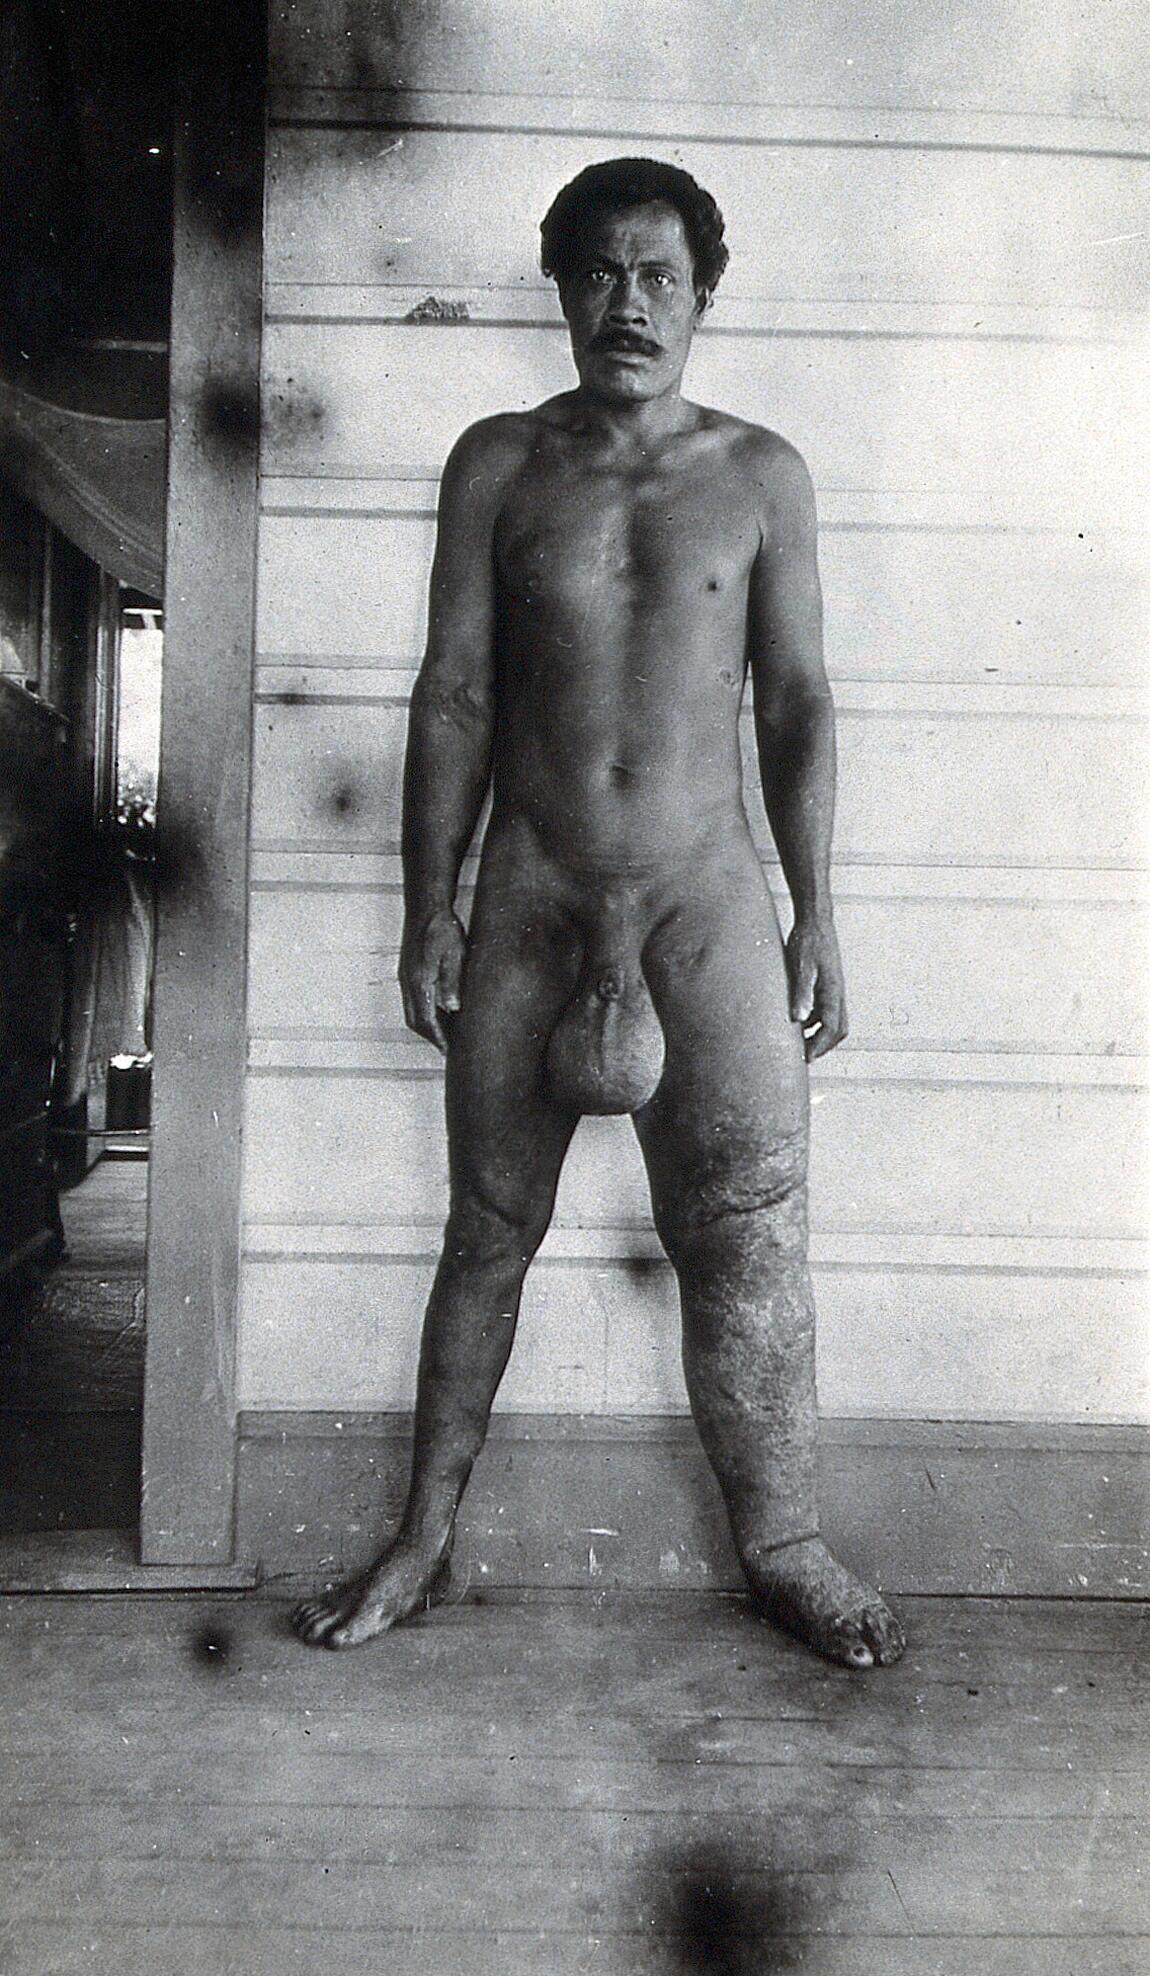 Standing Man Full Length Side View With Elephantiasis Of